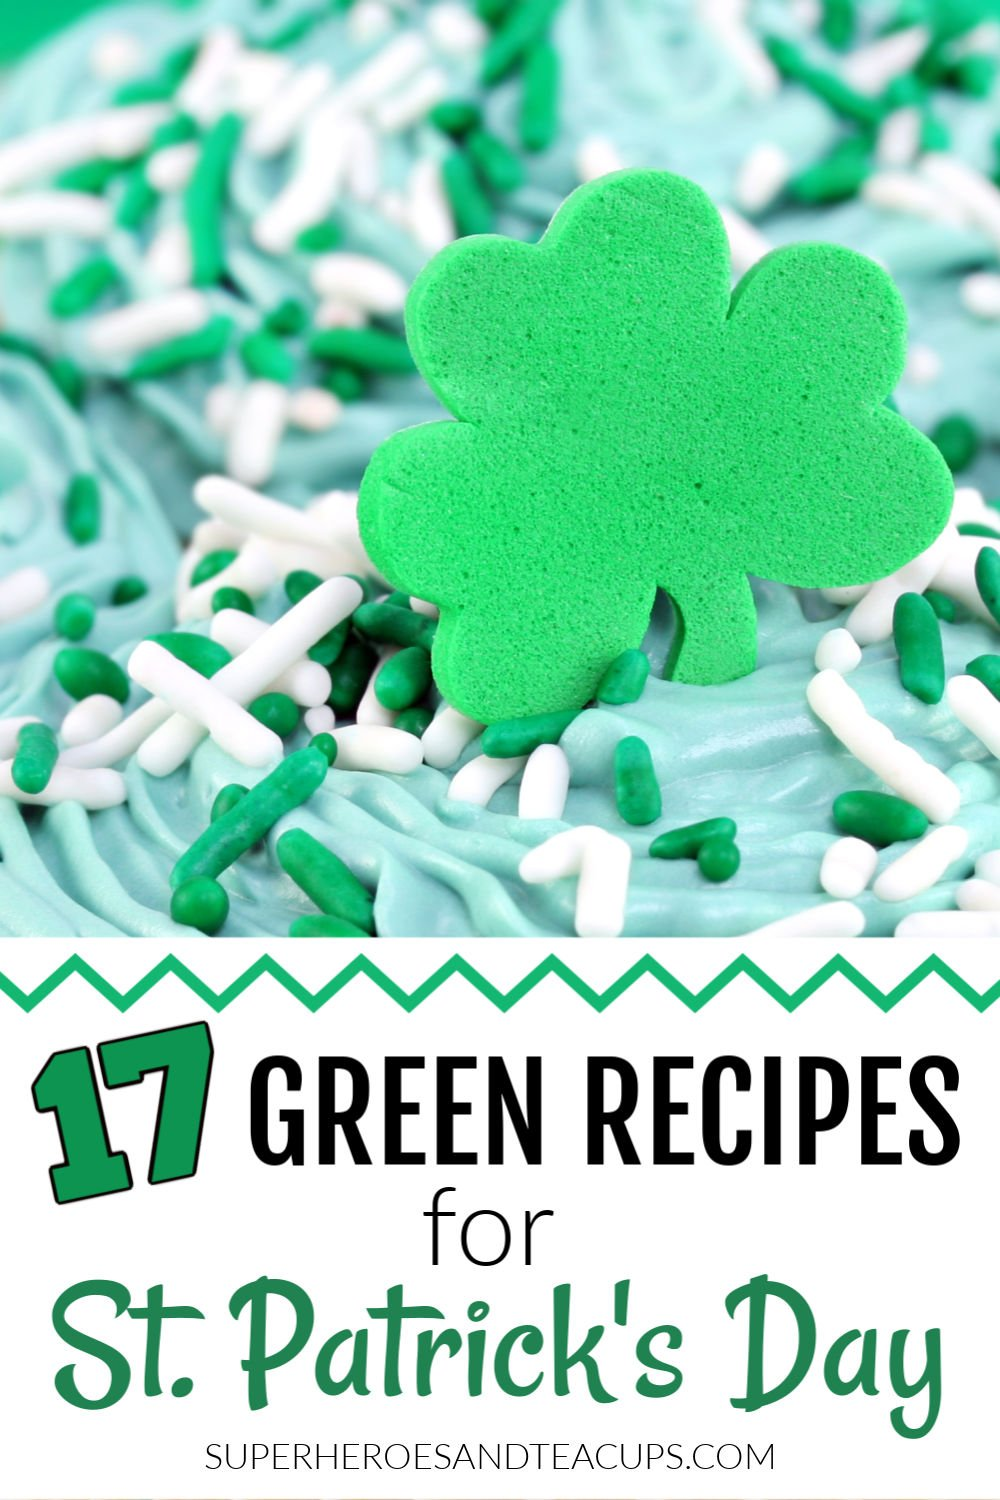 17 Green Recipes for St. Patrick's Day